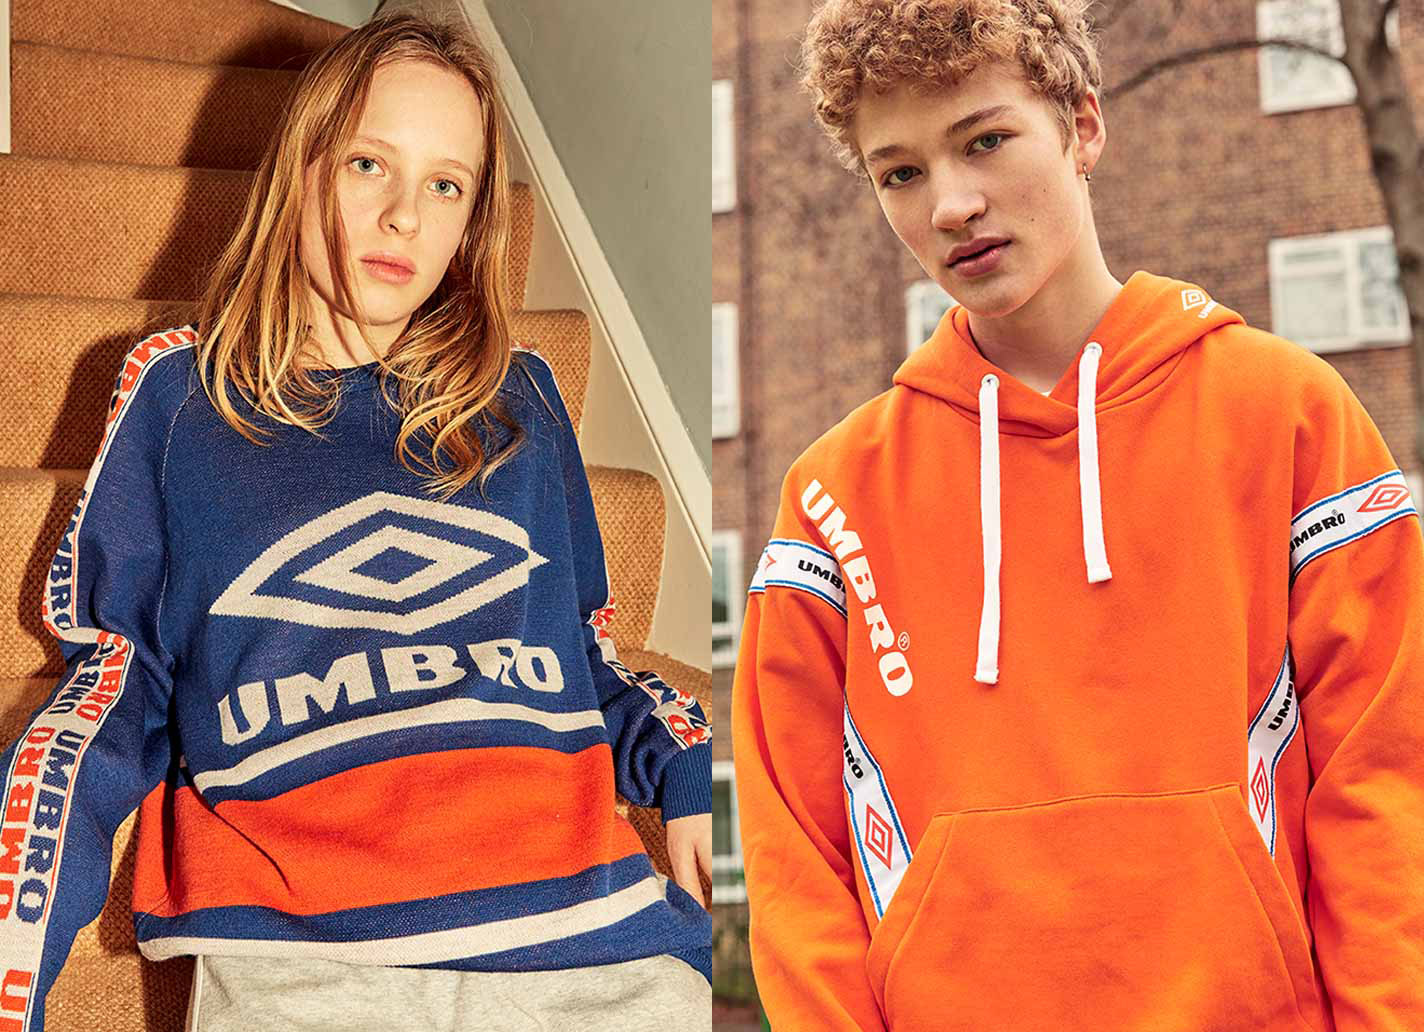 3-umbro-young-collective